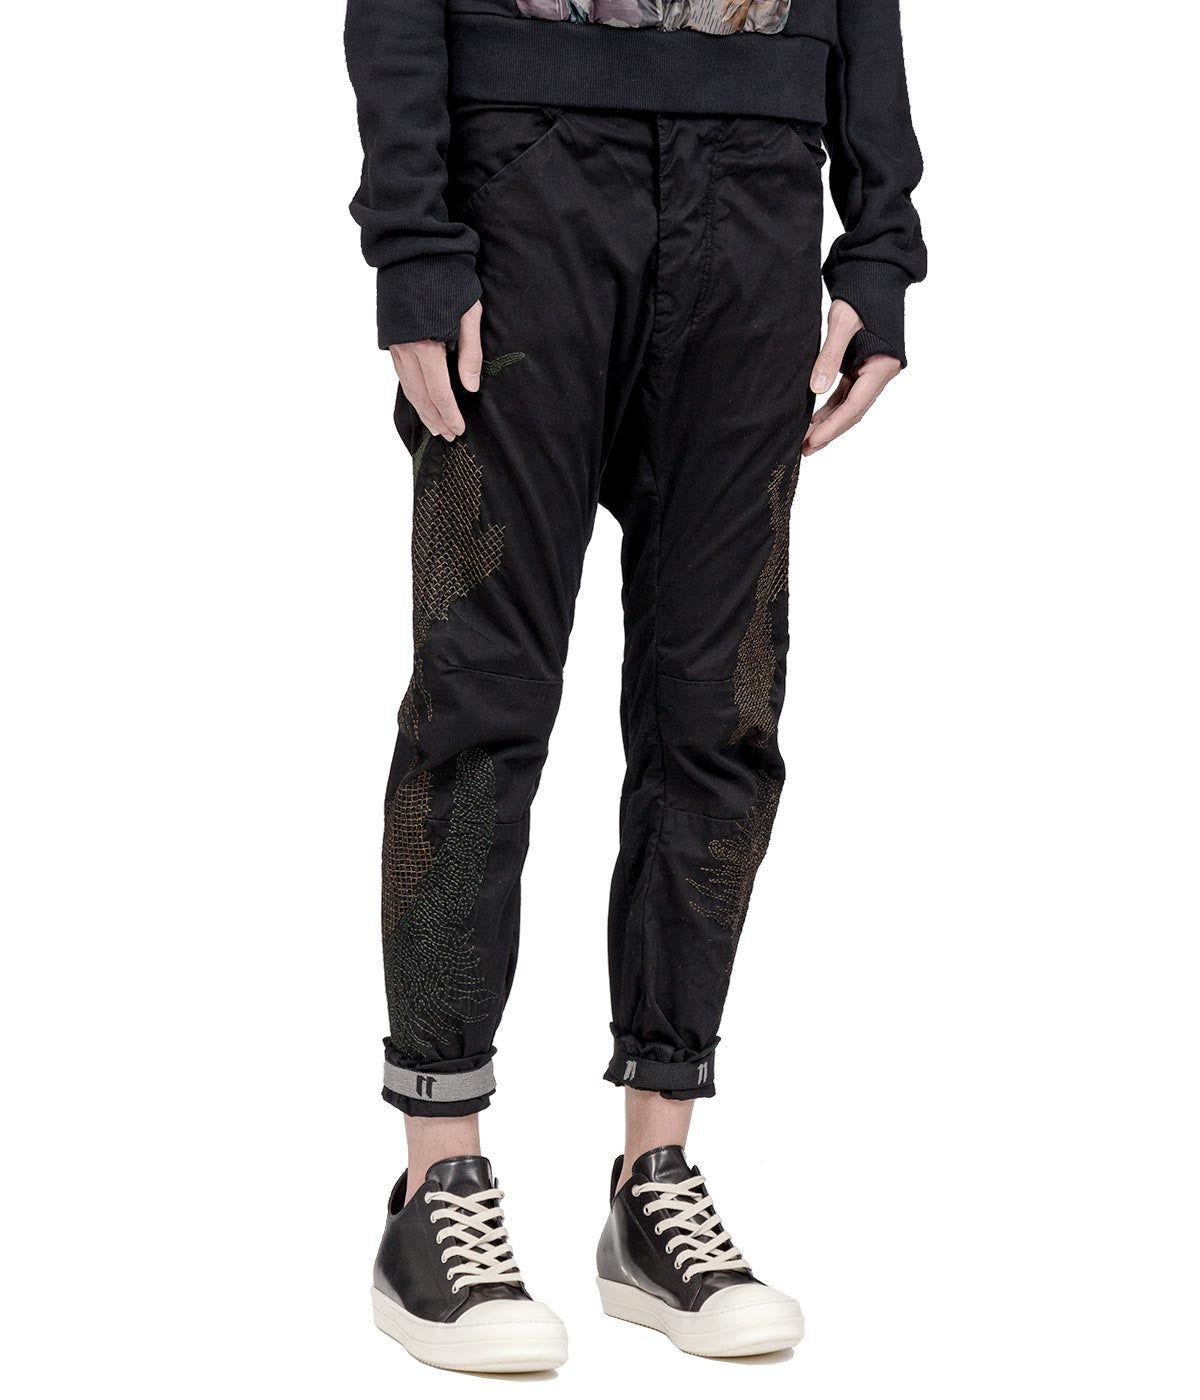 Black Dropped Crotch Cotton Trousers